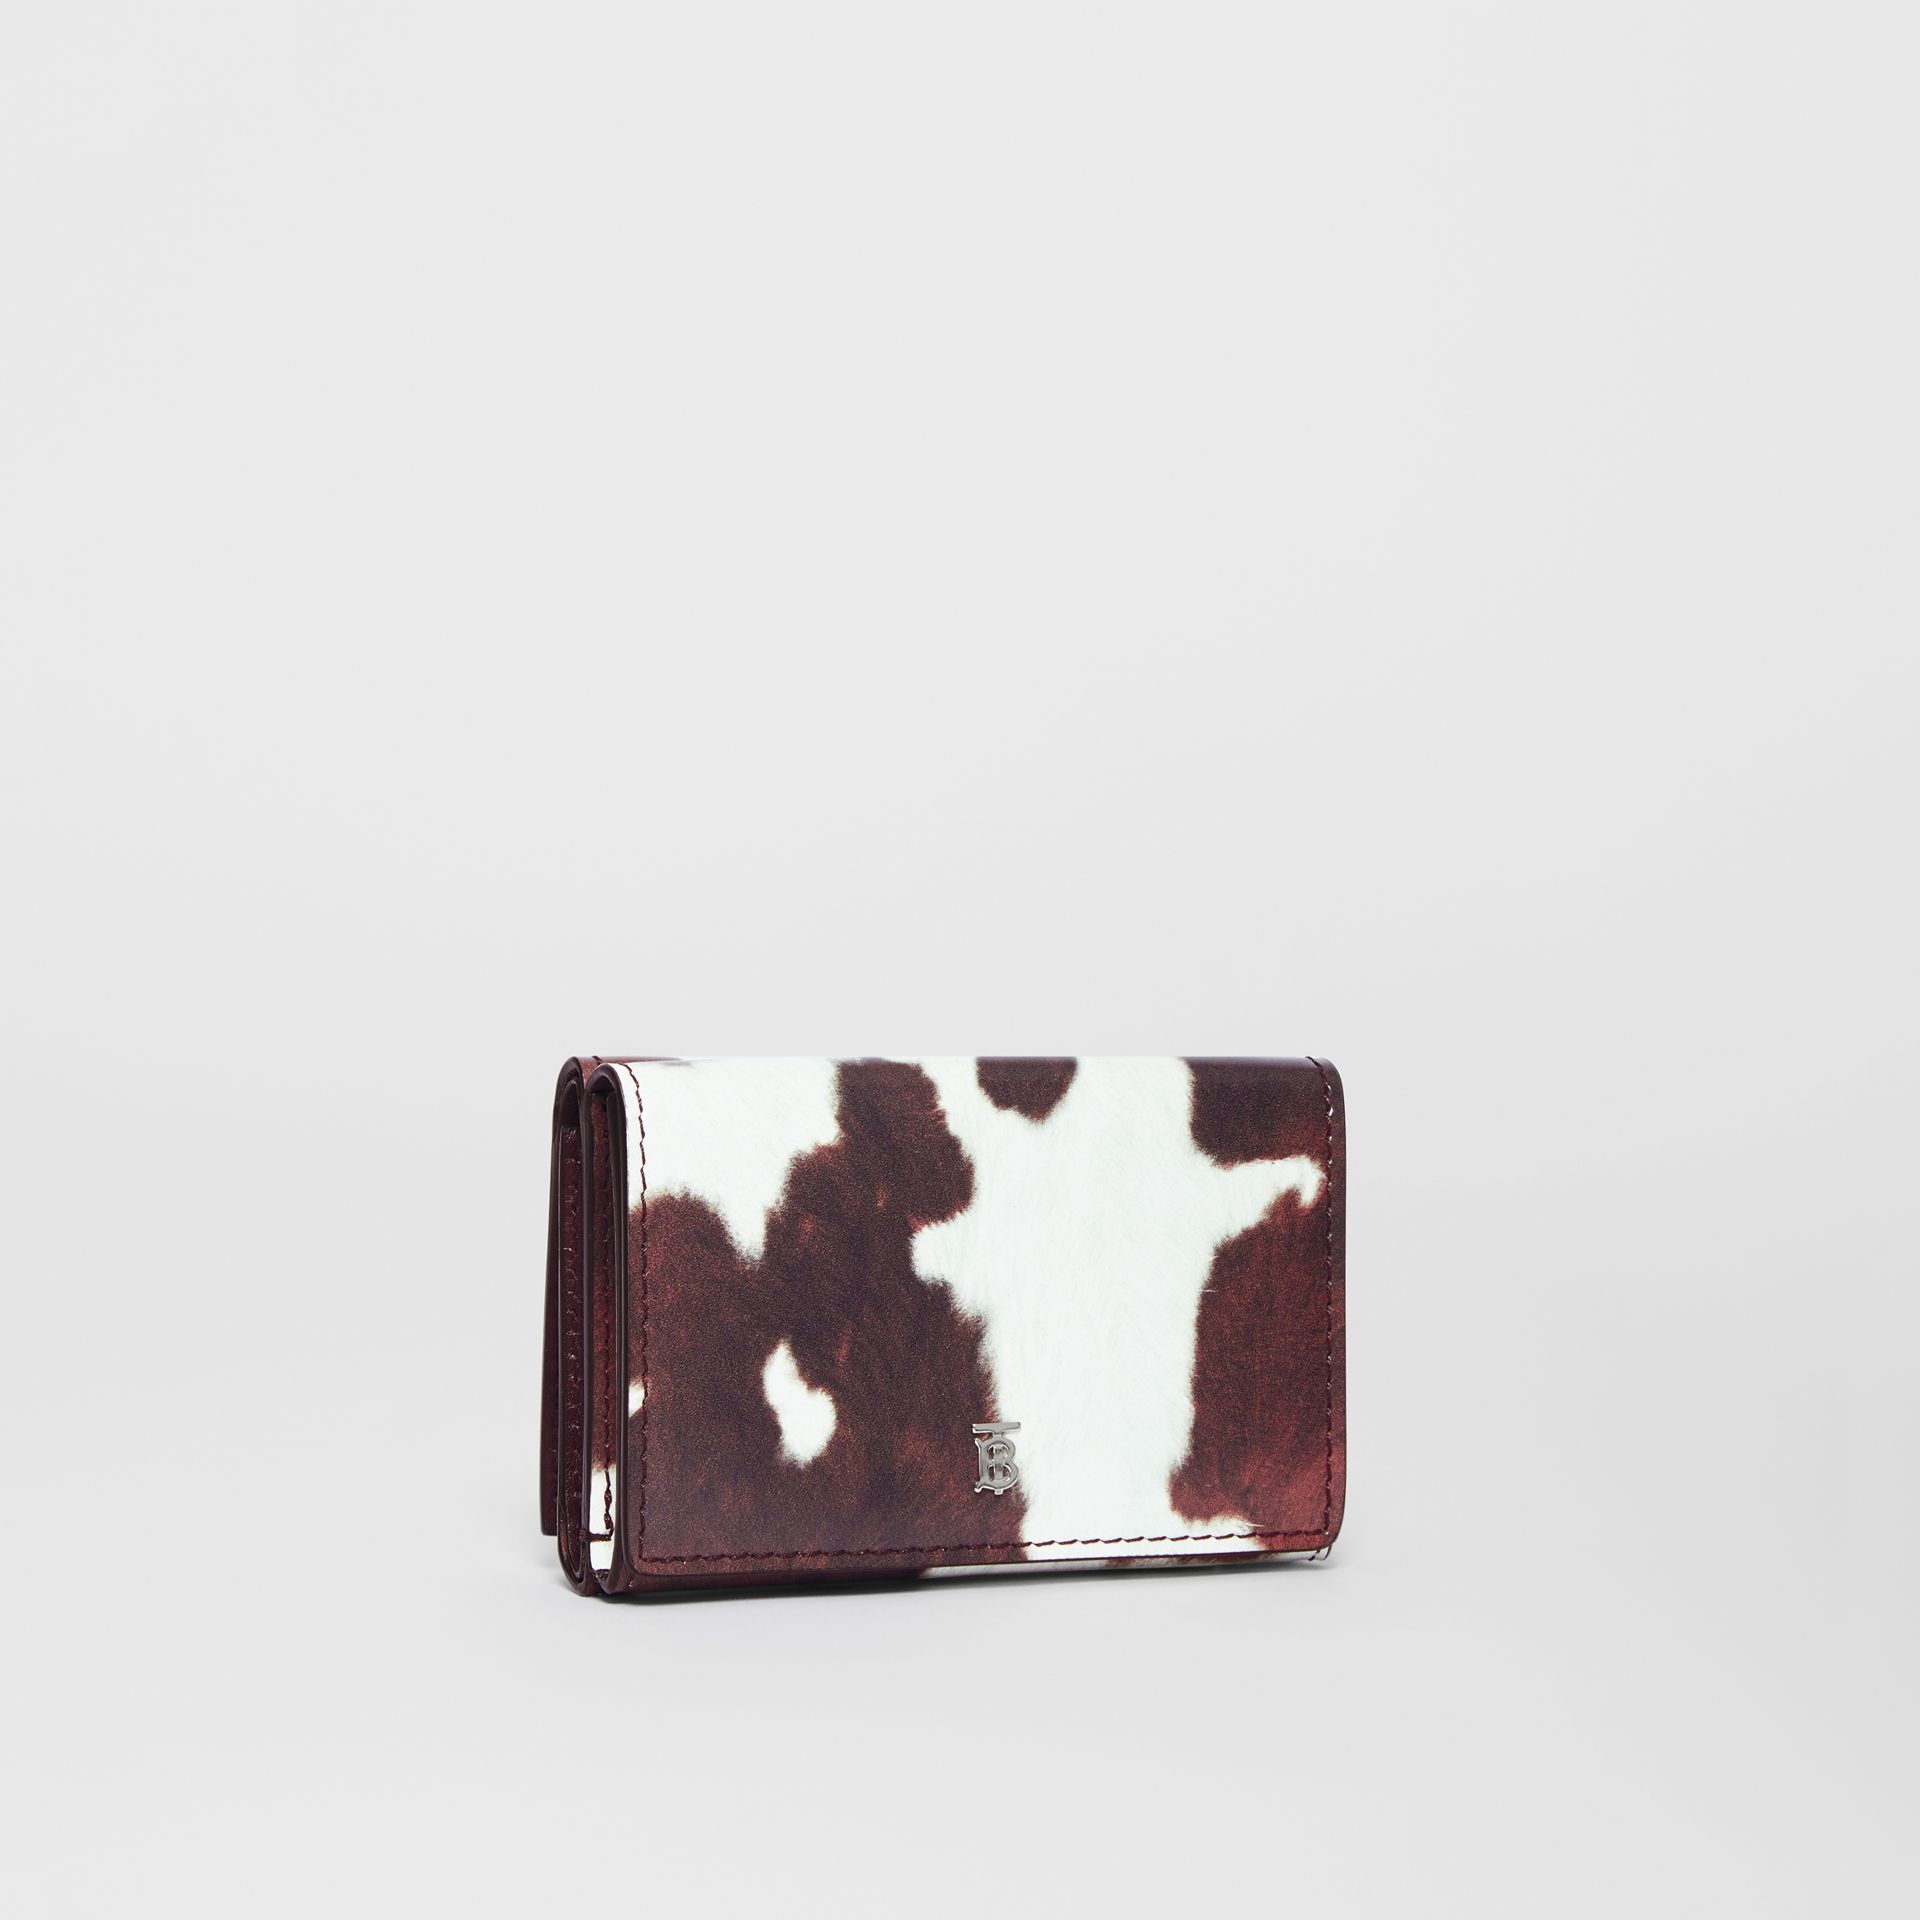 Small Cow Print Leather Folding Wallet in Malt Brown - Women | Burberry Hong Kong S.A.R - gallery image 3